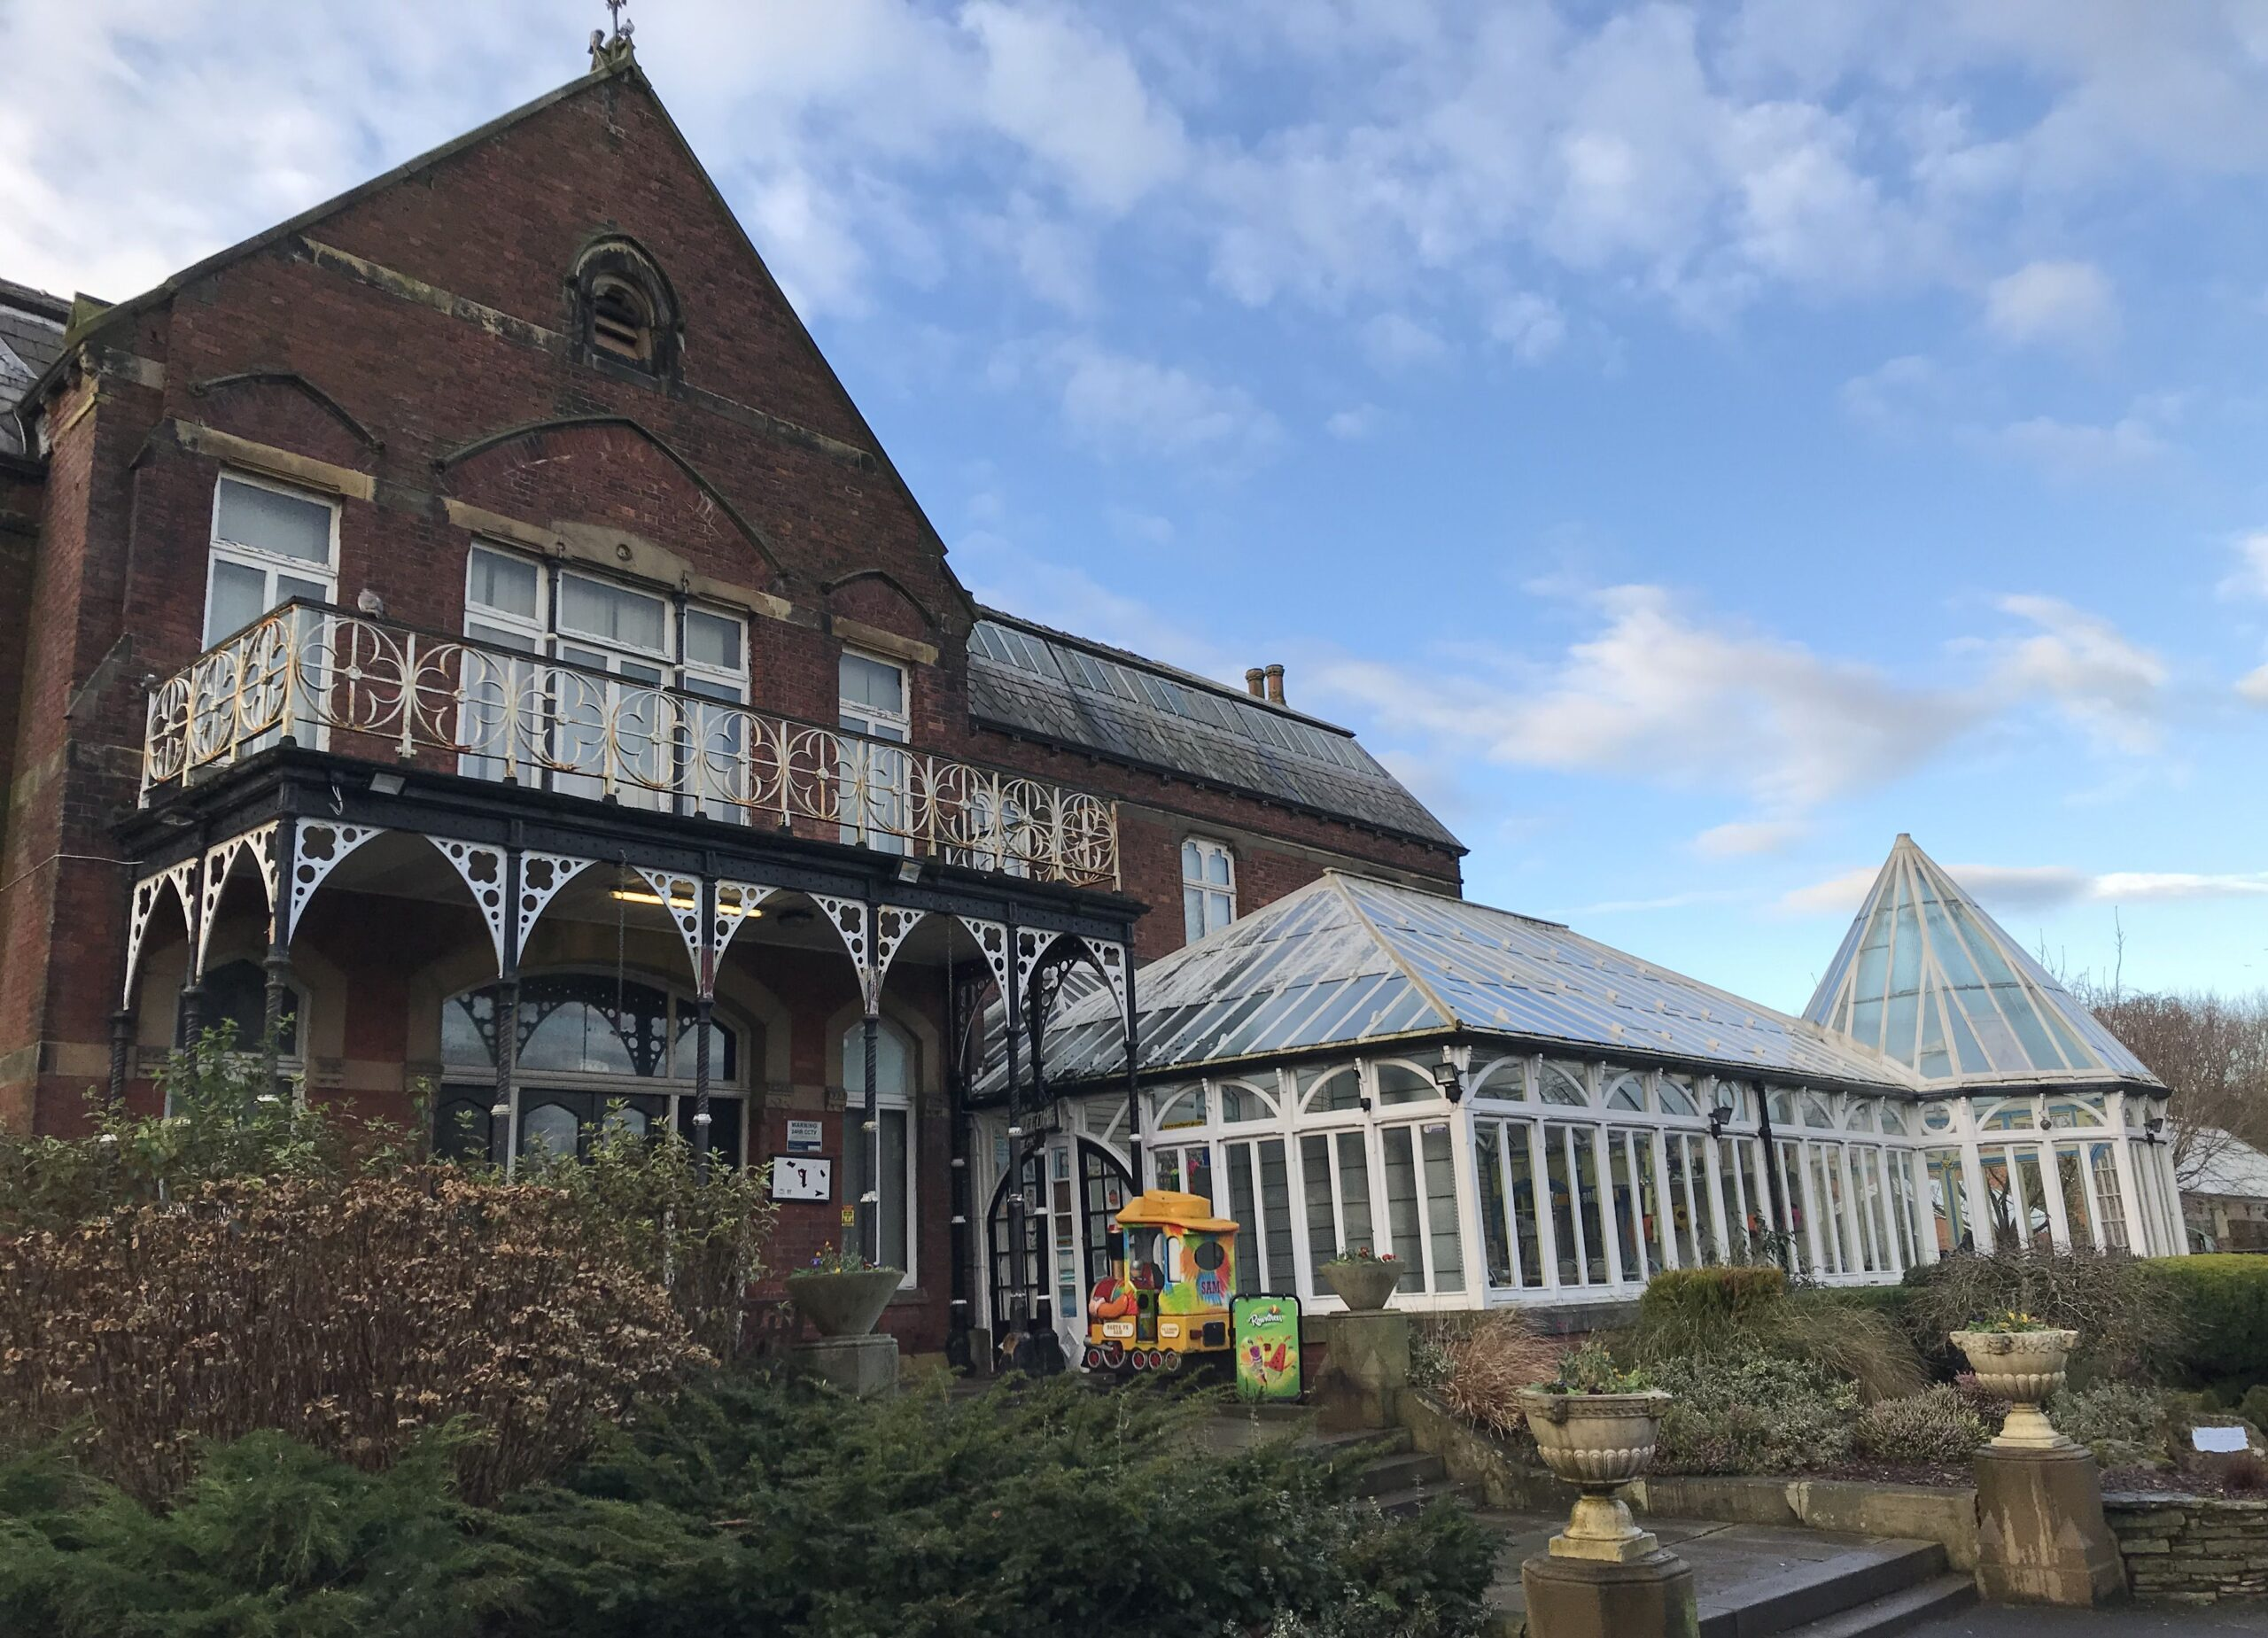 The Botanic Gardens Museum and cafe. Photo by Andrew Brown Media